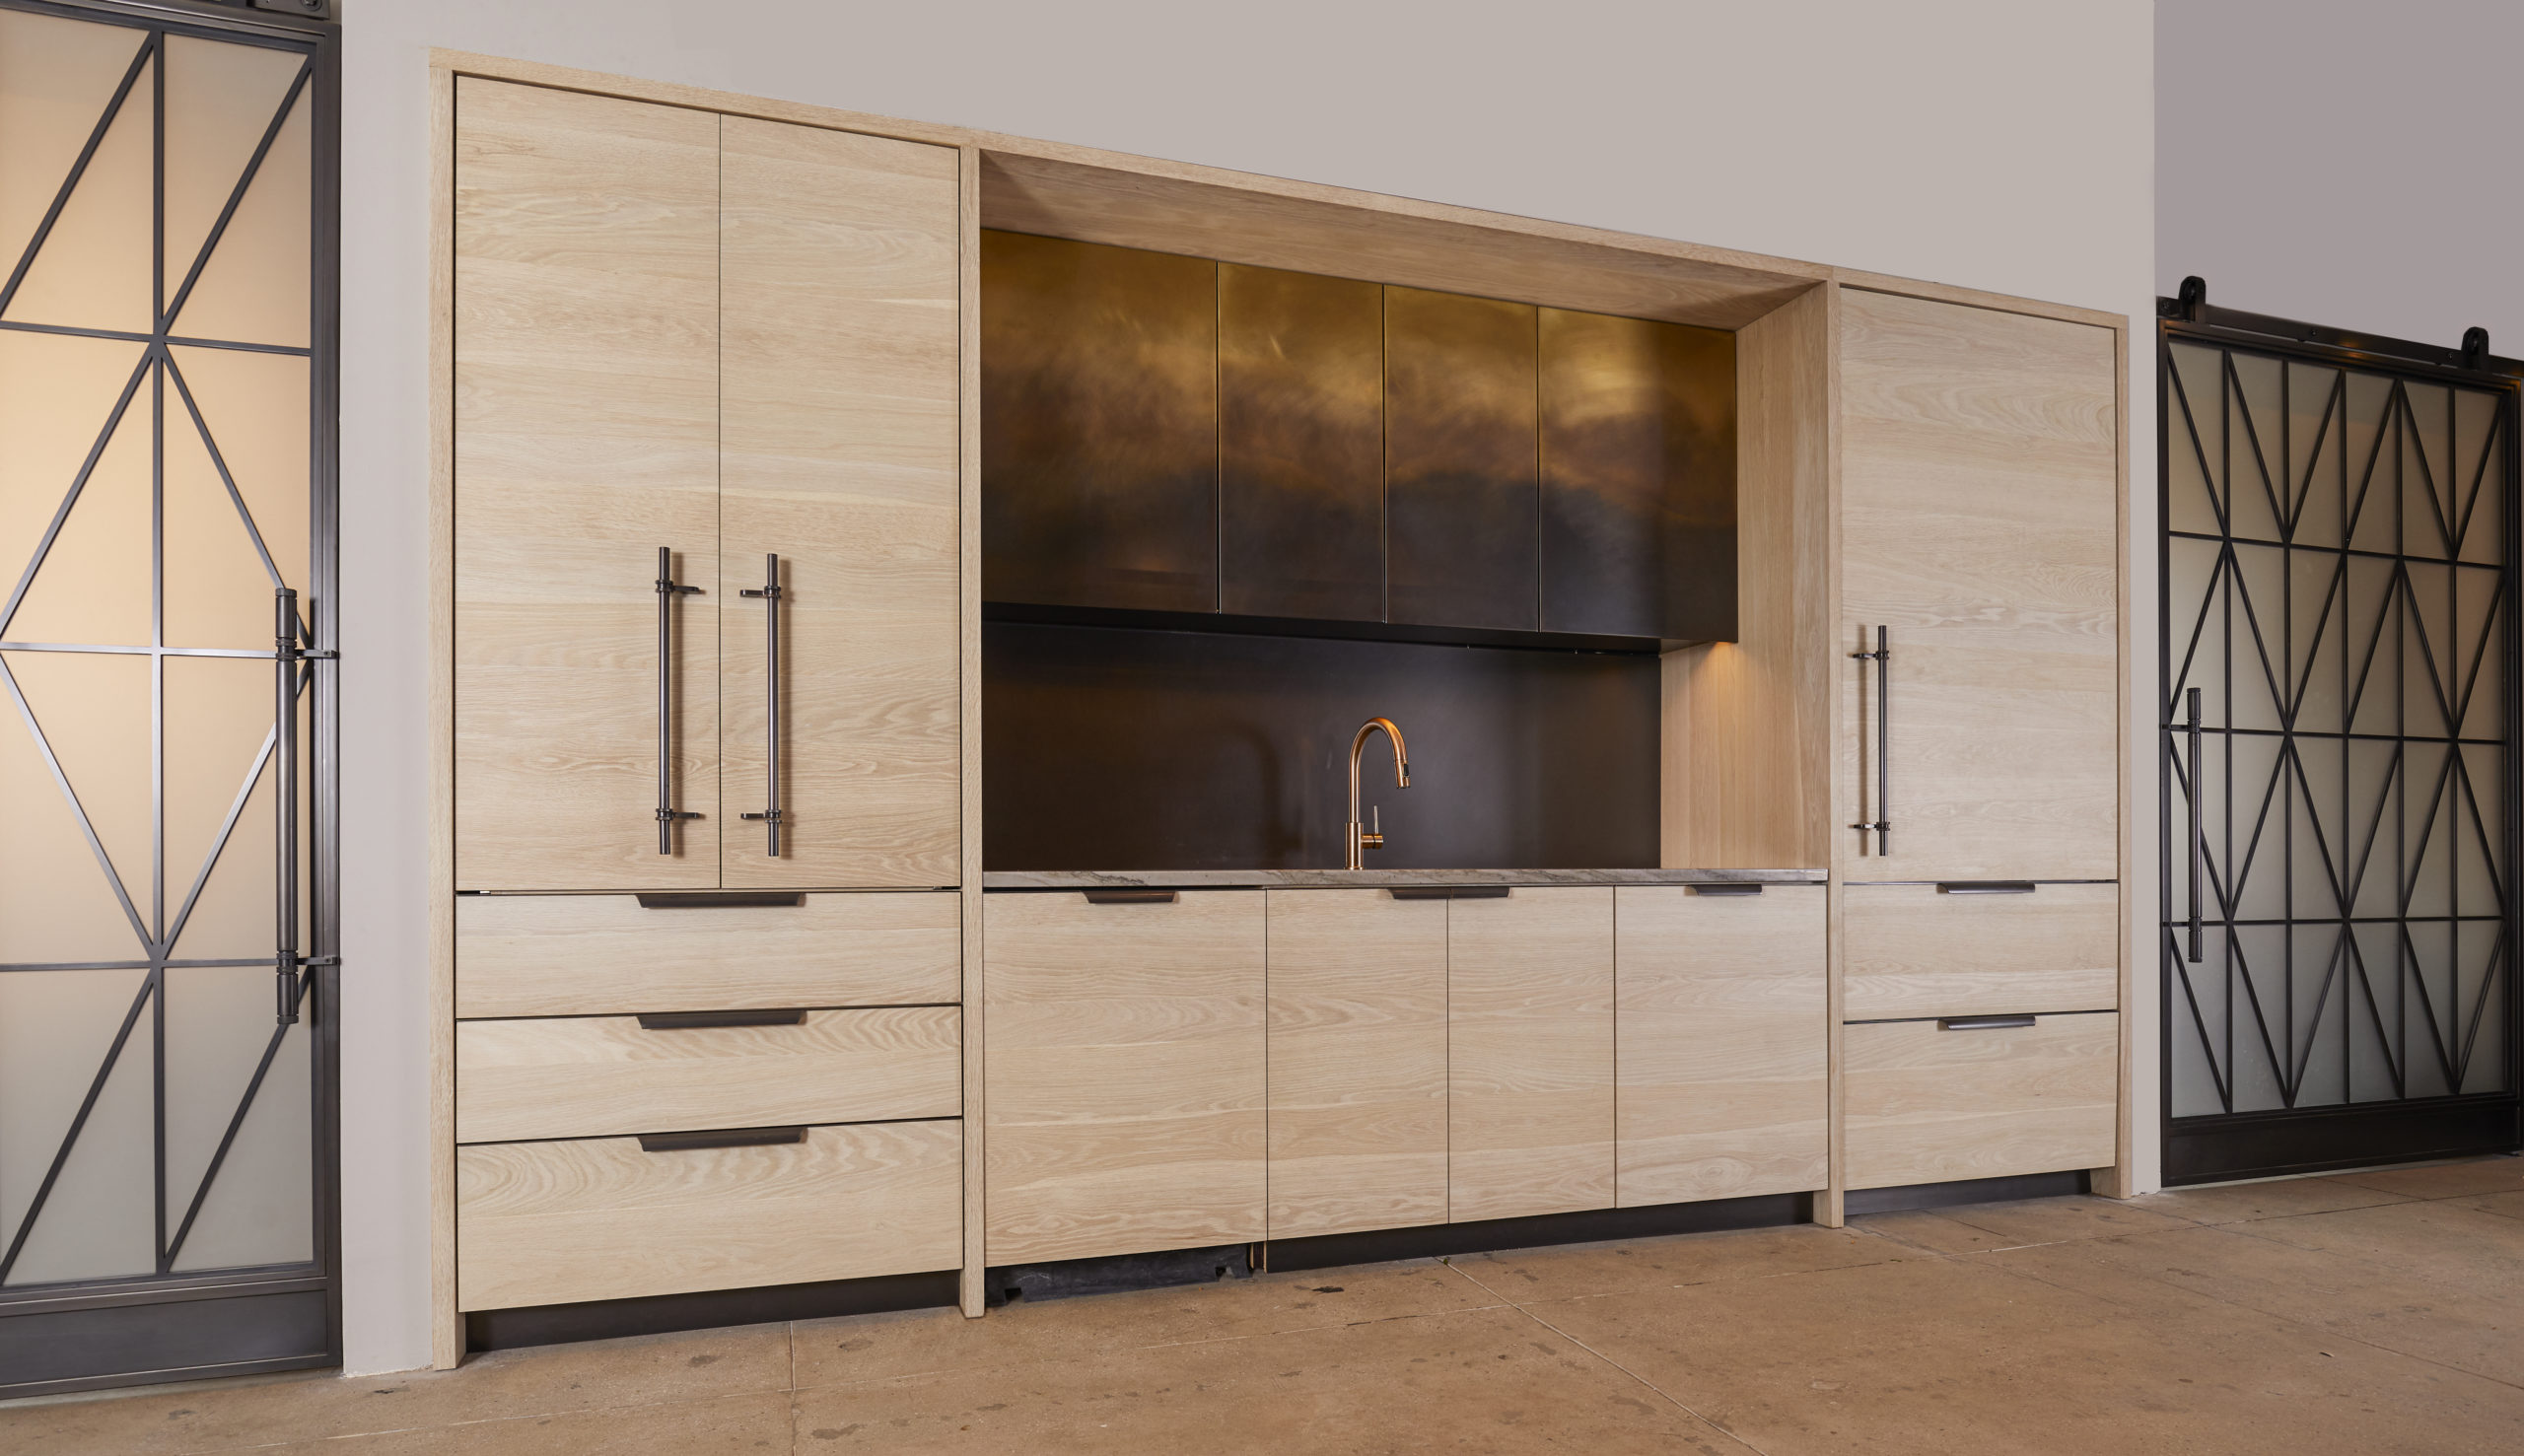 amuneal_products_WNWN_NYDC_nyc-showroom_3ombre-kitchen-nydc-200lex-scaled-1